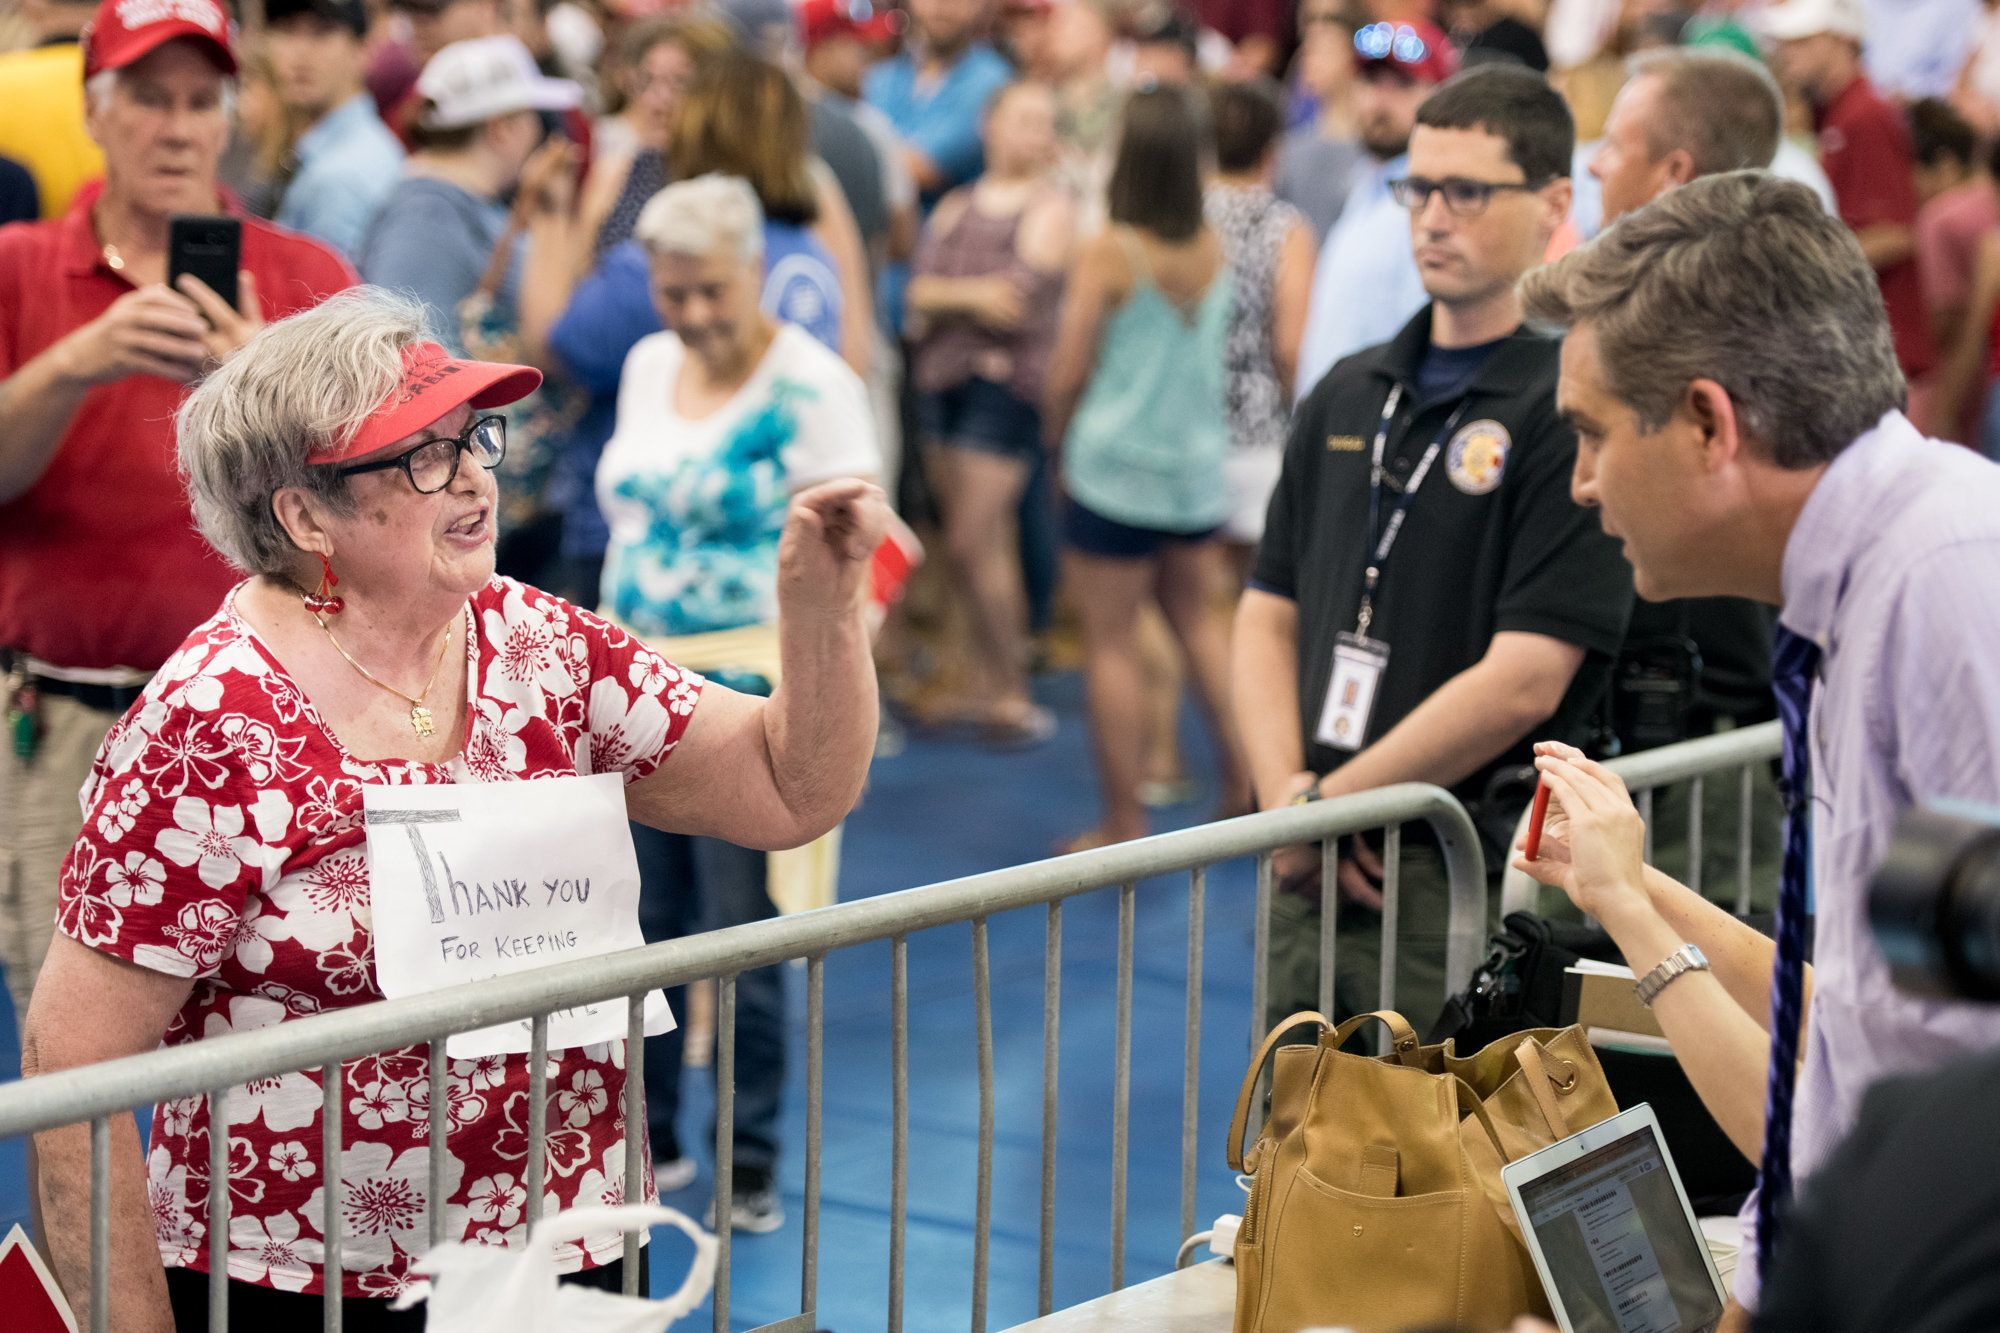 A woman shouted at CNN's Jim Acosta before a rally in South Carolina on Monday.